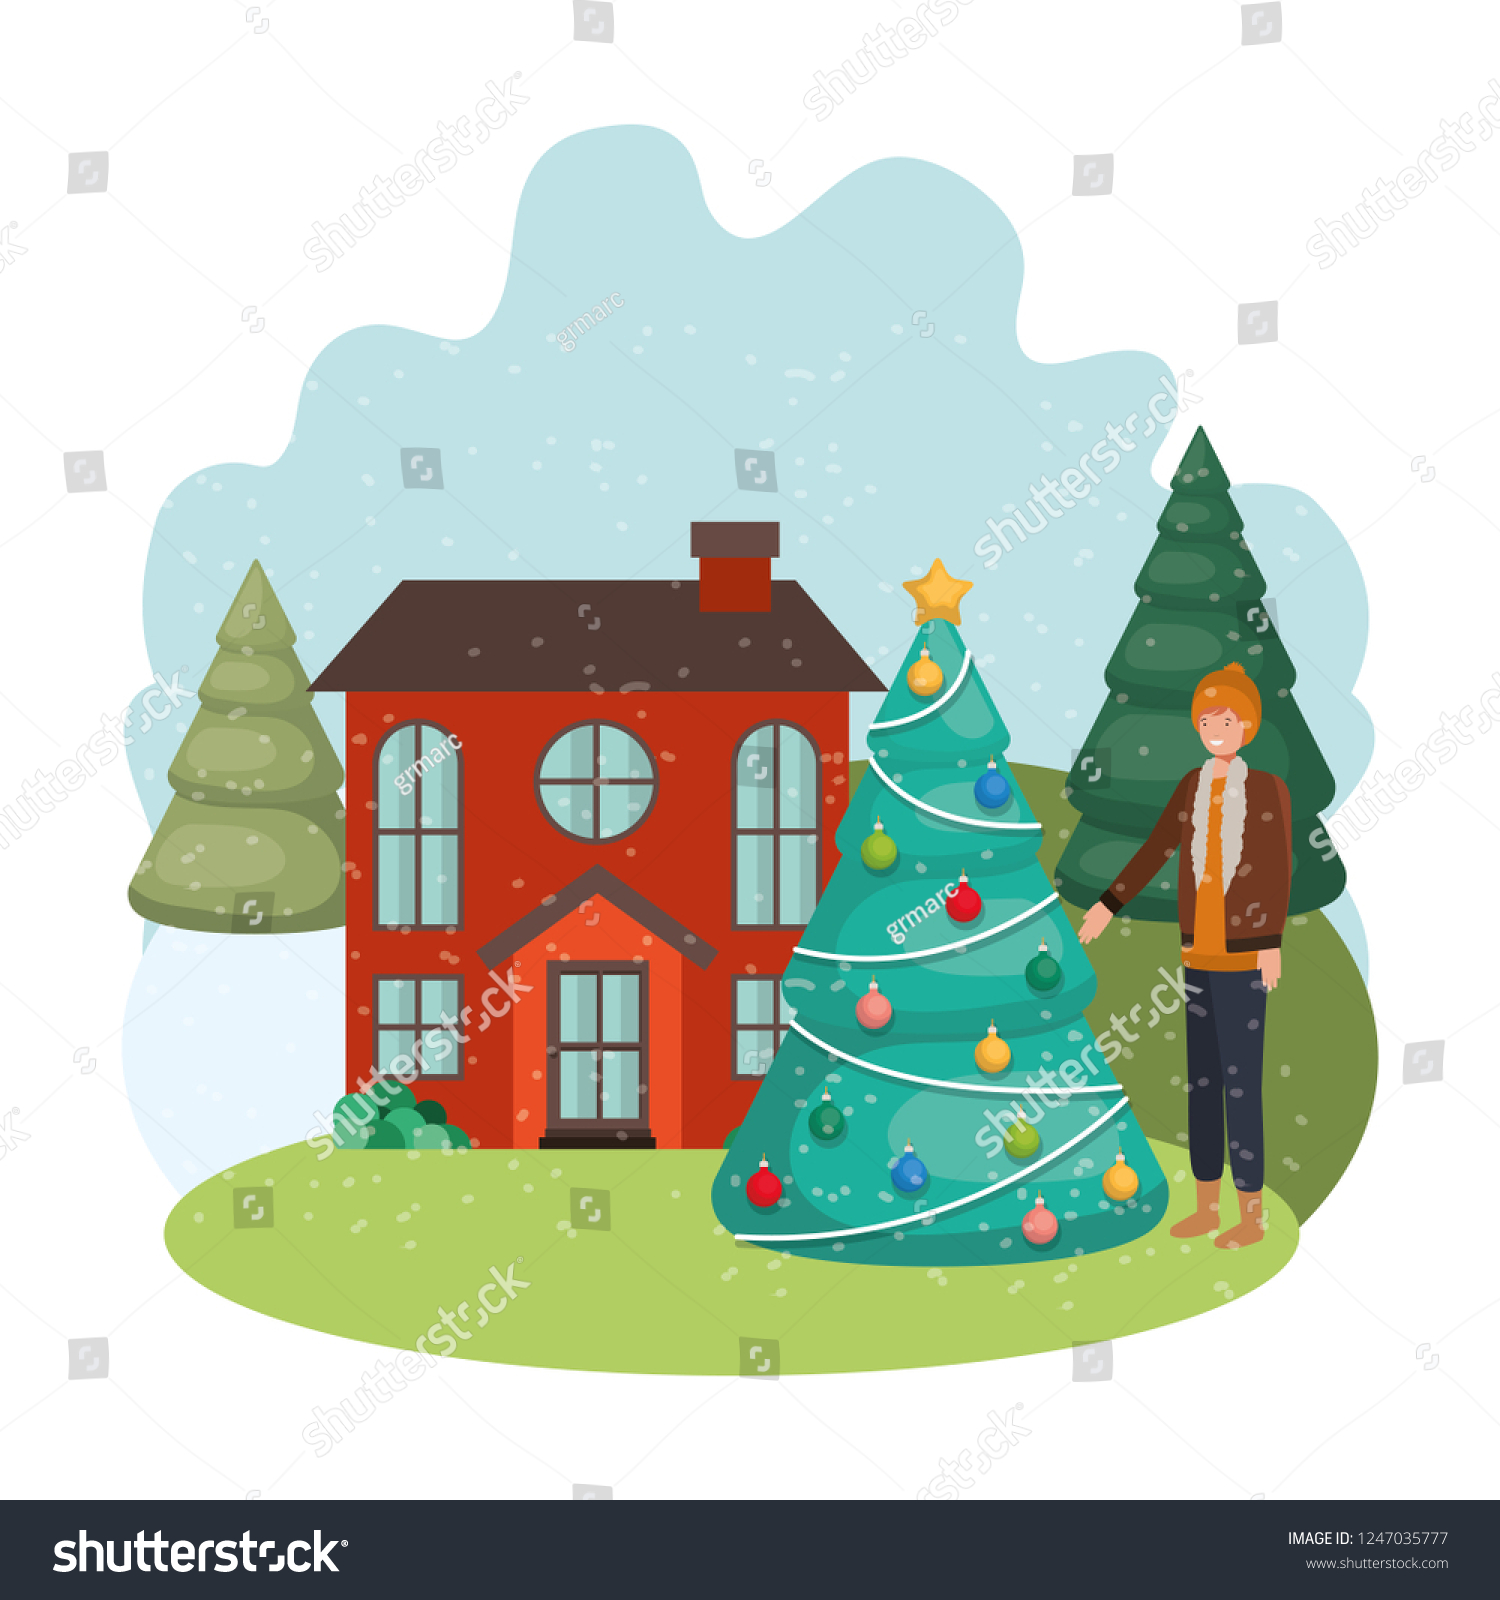 Man Christmas Tree Outside House Stock Vector Royalty Free 1247035777 Check out our funny cartoon tree selection for the very best in unique or custom, handmade pieces from our shops. shutterstock